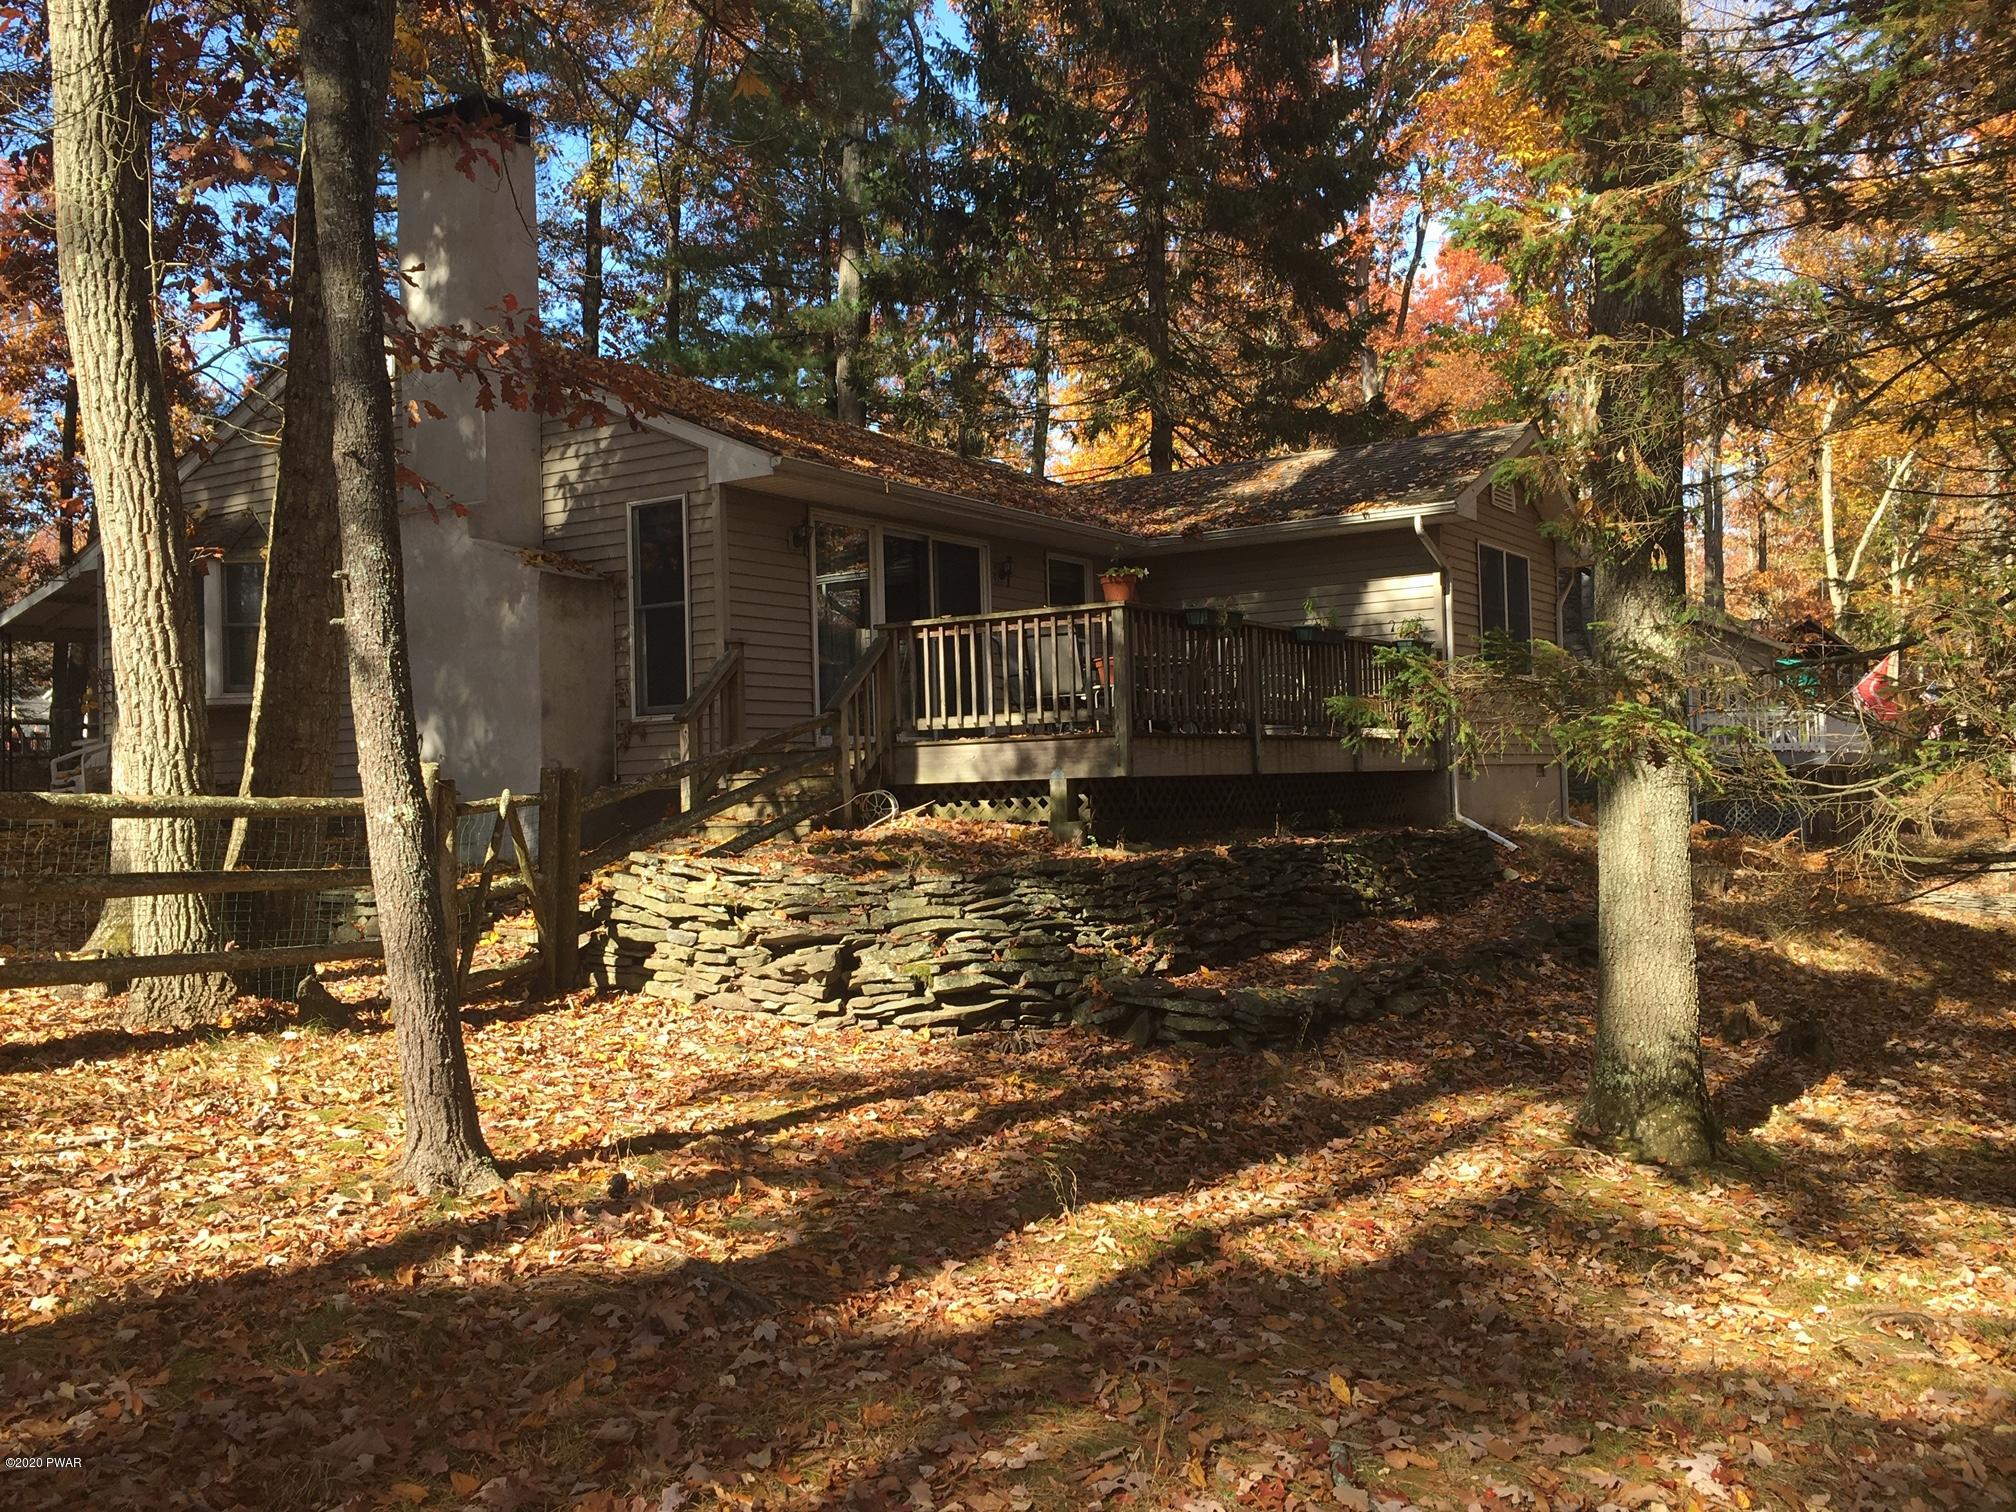 Mls 20 4382 50 Lakeside Dr Lakeville Pa 18438